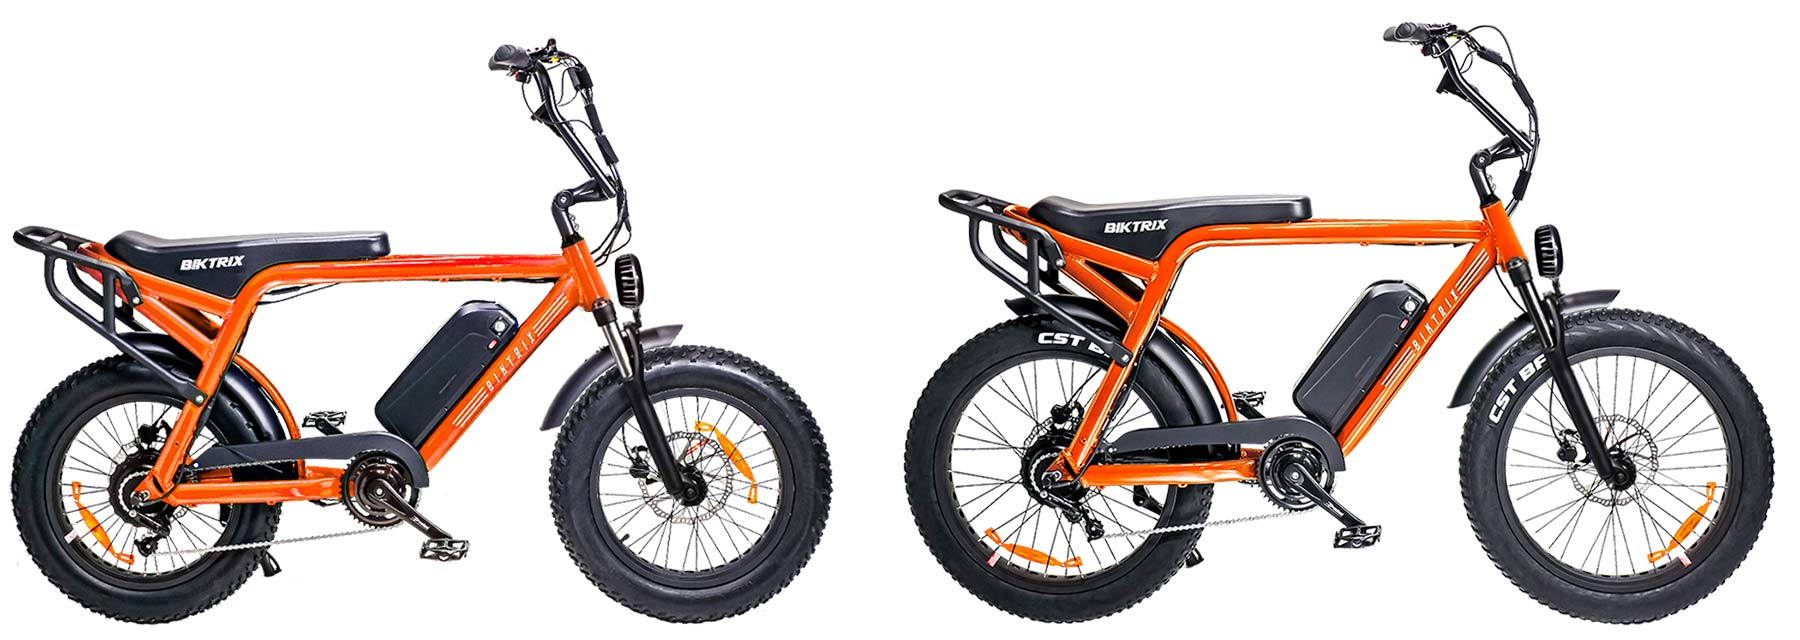 Biktrix Moto e-bike, urban mobility eMTB e-moped alternative transportation, sizes